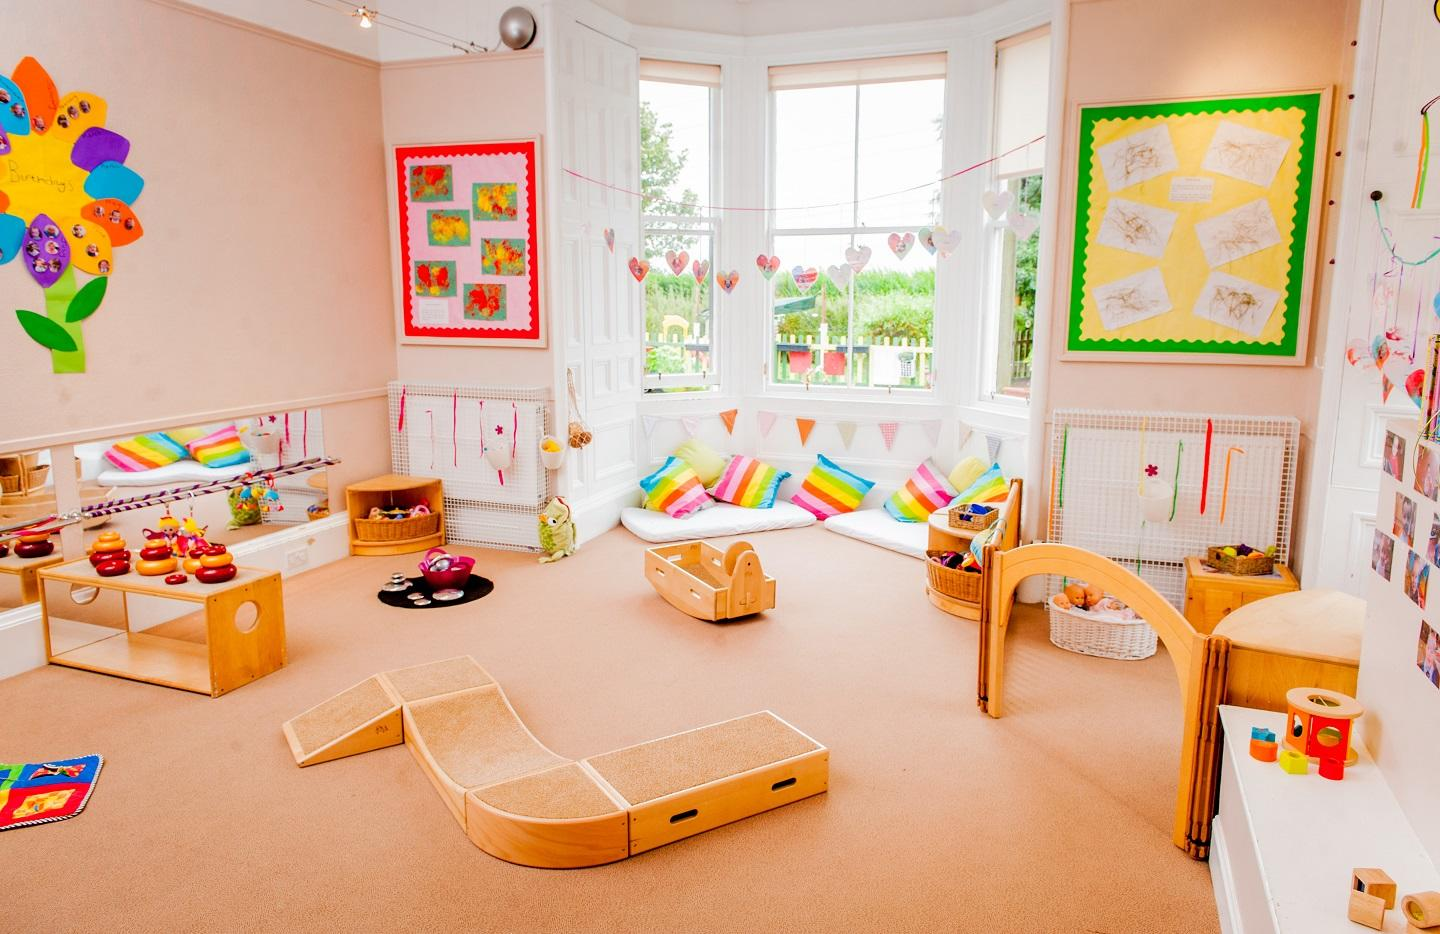 Bright Horizons Morton Mains Early Learning and Childcare Edinburgh 03339 206027